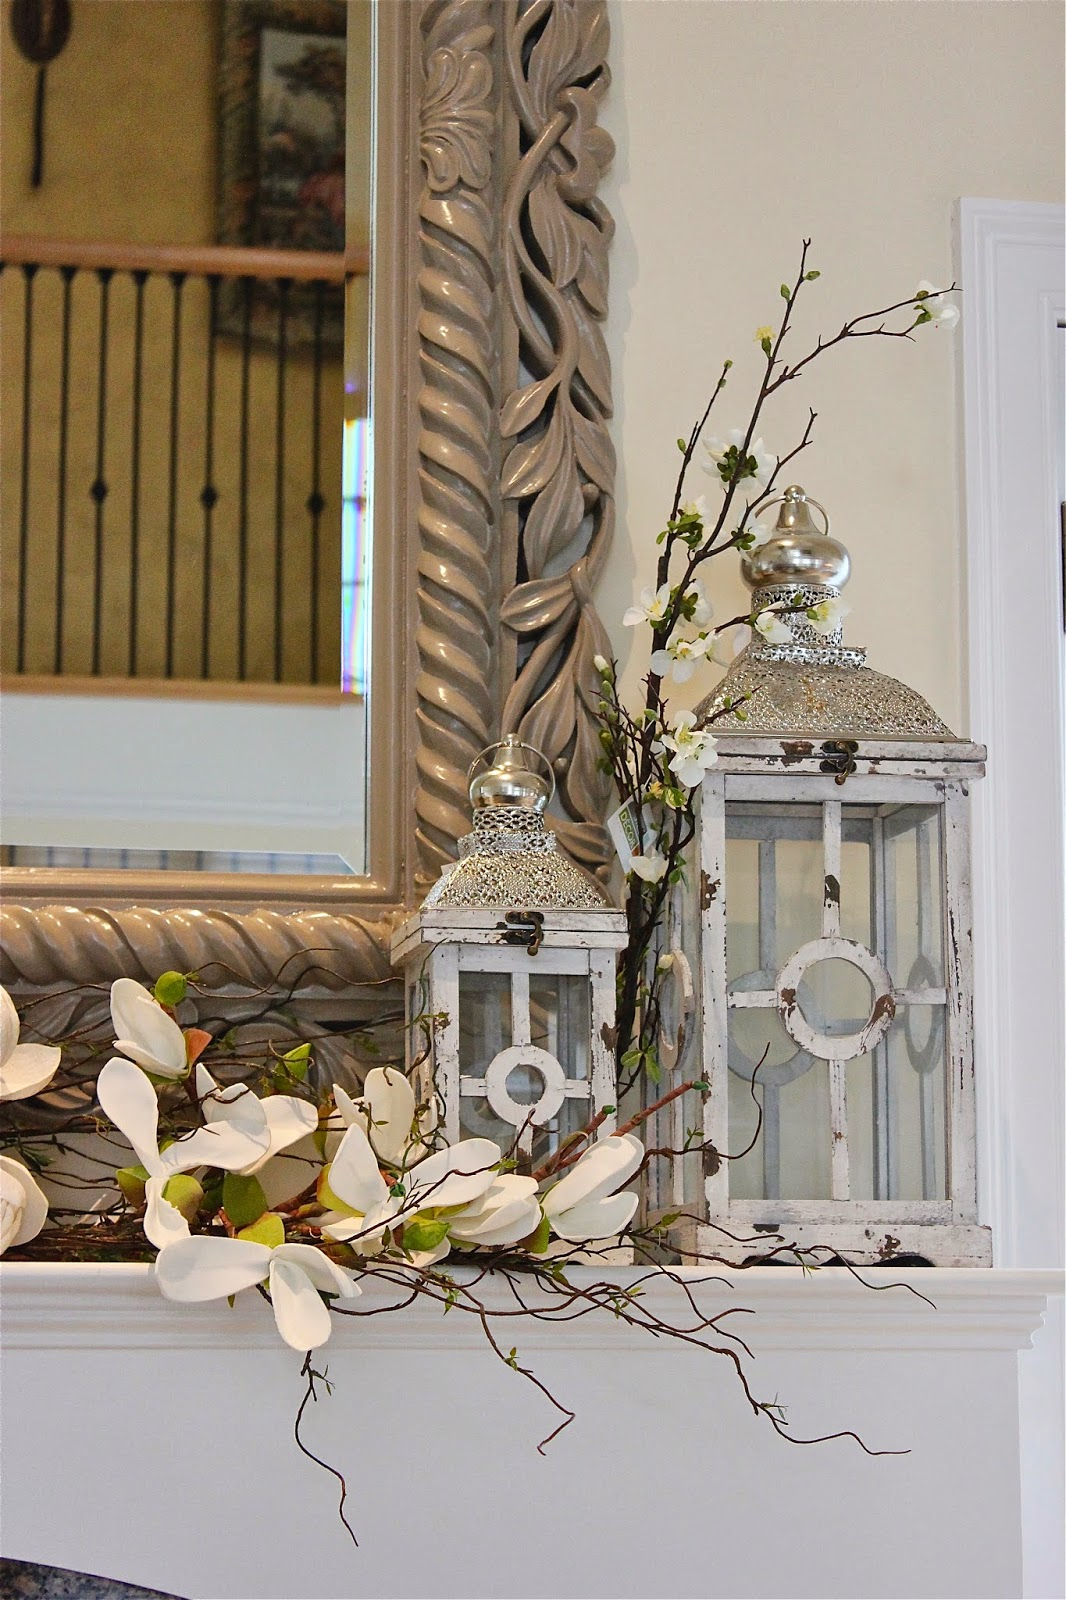 Maison decor styling a mantle with lanterns and florals for Maison decour